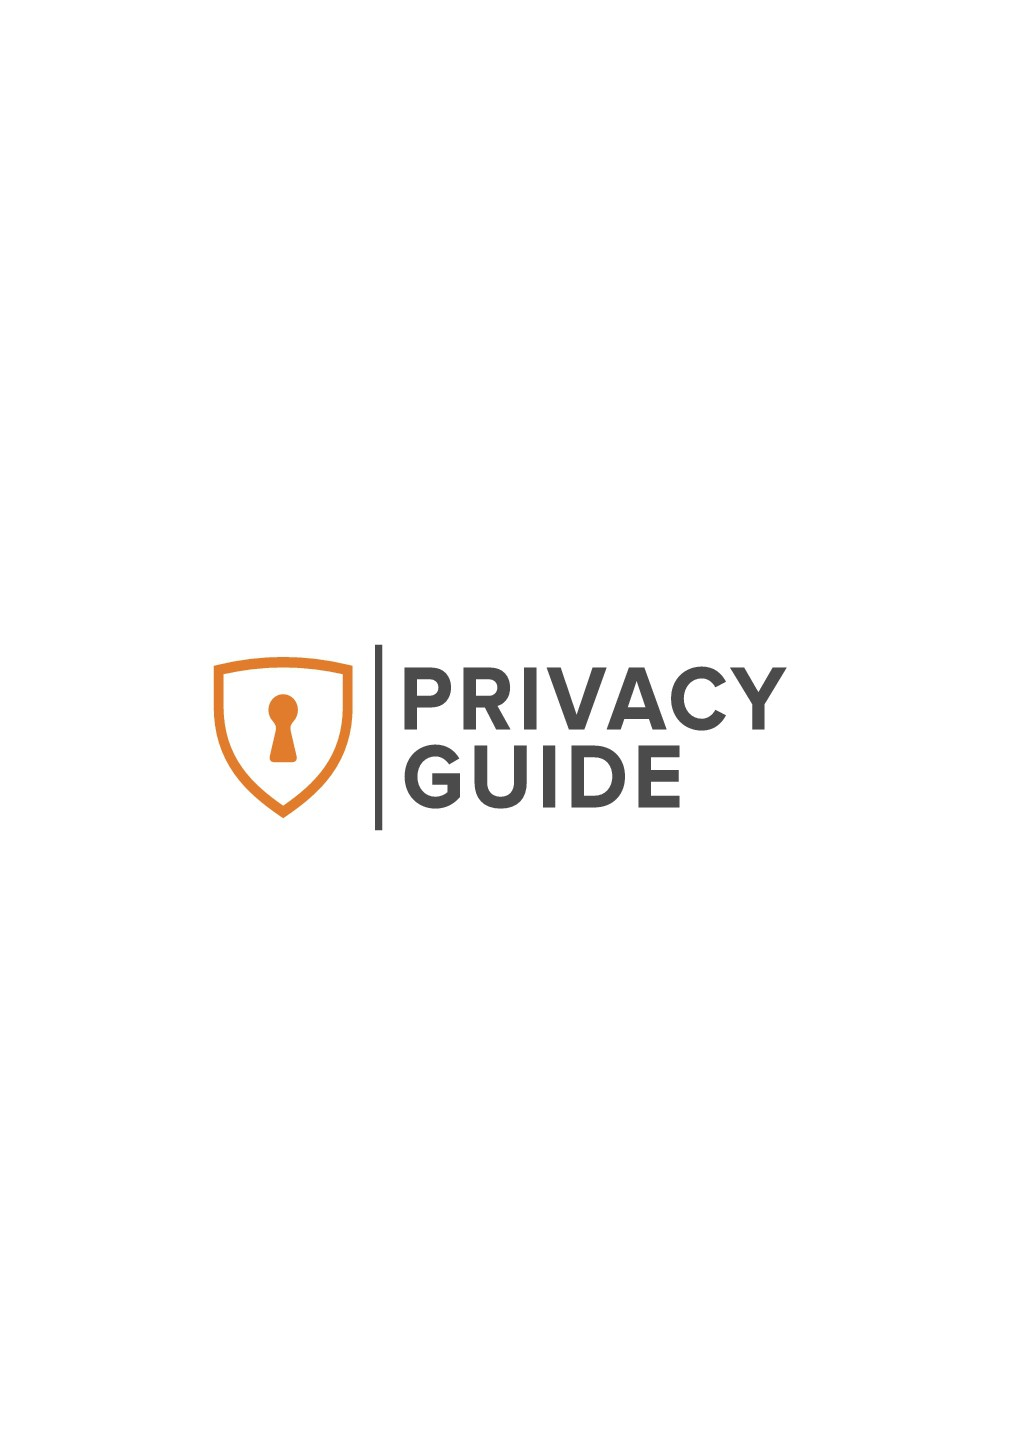 Logo for new online product: Privacy Guide